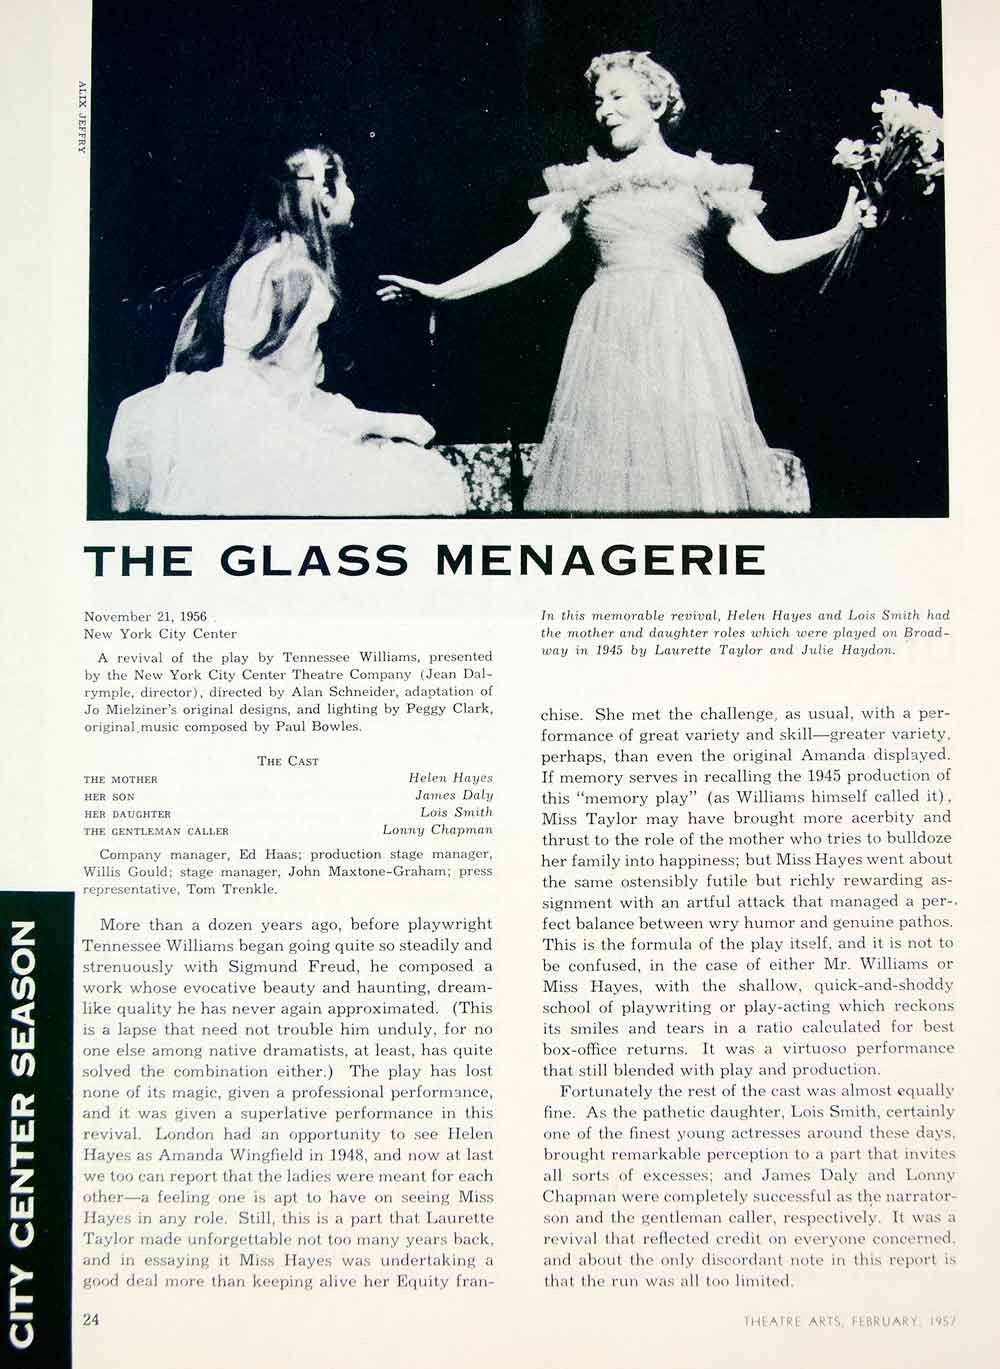 E Business Essay  Article The Glass Menagerie Play Review Tennessee Williams Helen Hayes  Yta Help Writing Nursing Admission Eassay also Teaching Essay Writing To High School Students  Article The Glass Menagerie Play Review Tennessee Williams  Custom Wrting